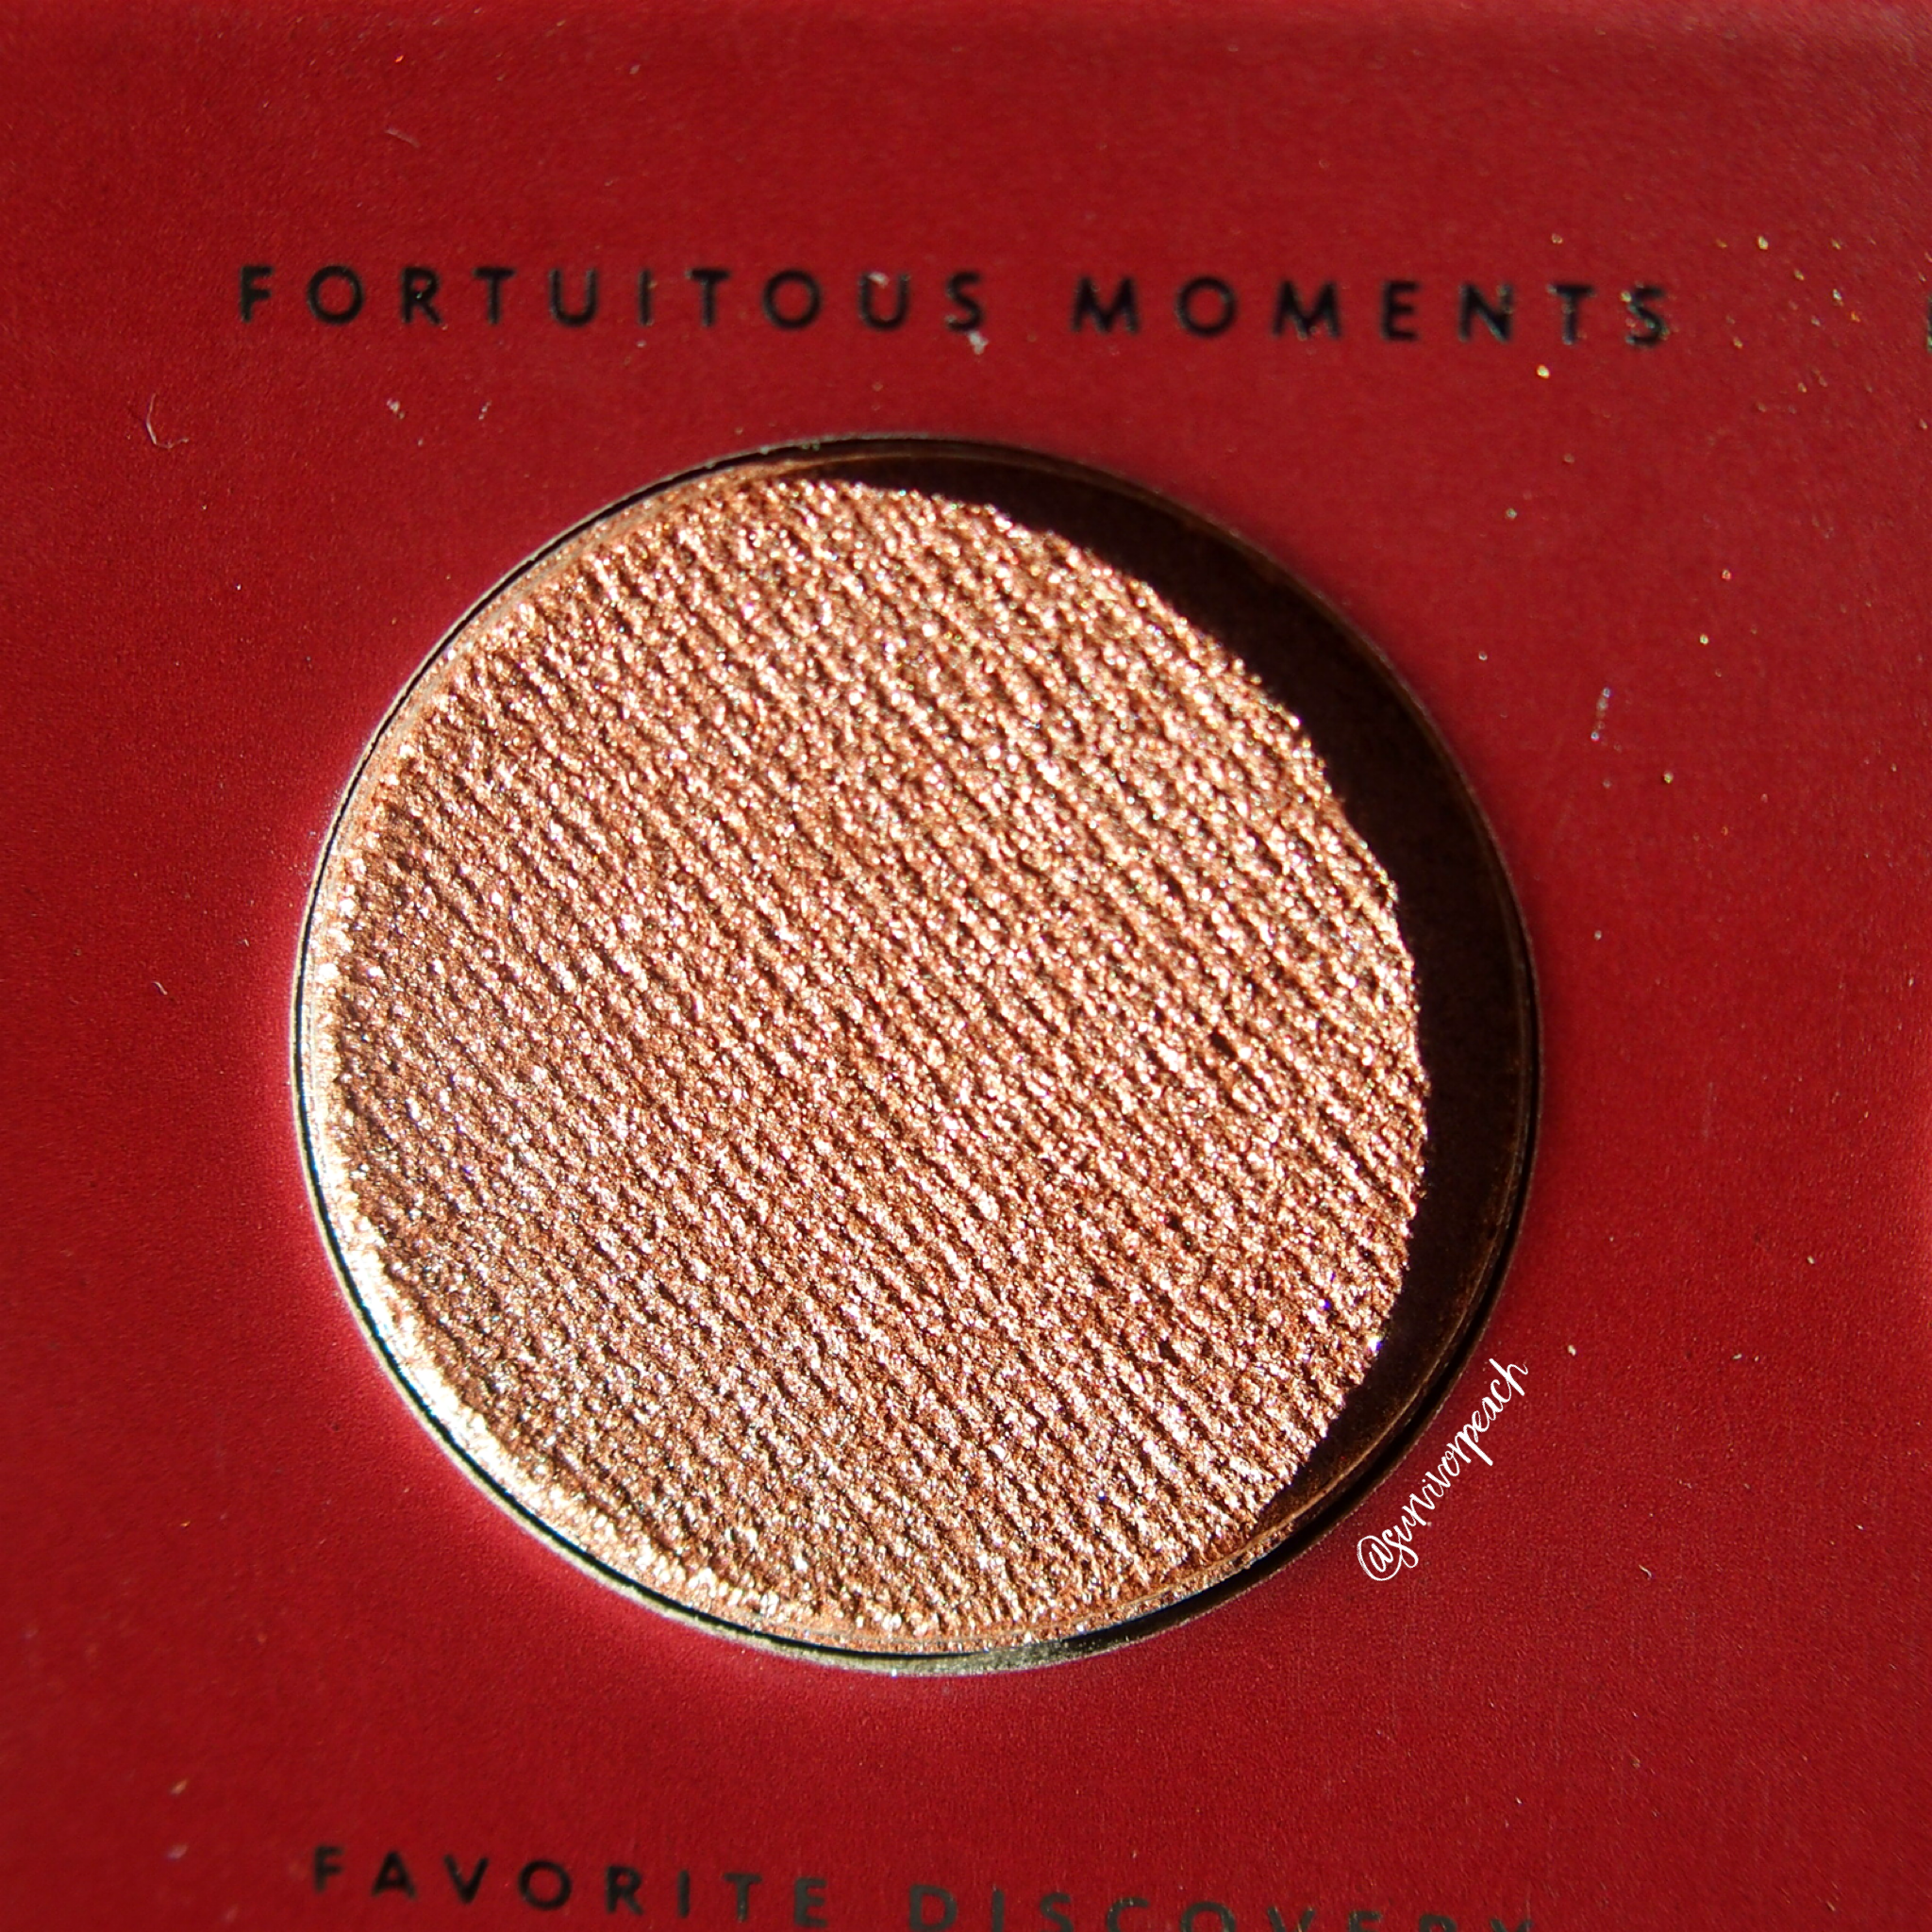 Zoeva Spice of Life Eyeshadow Palette - Fortuitous moments